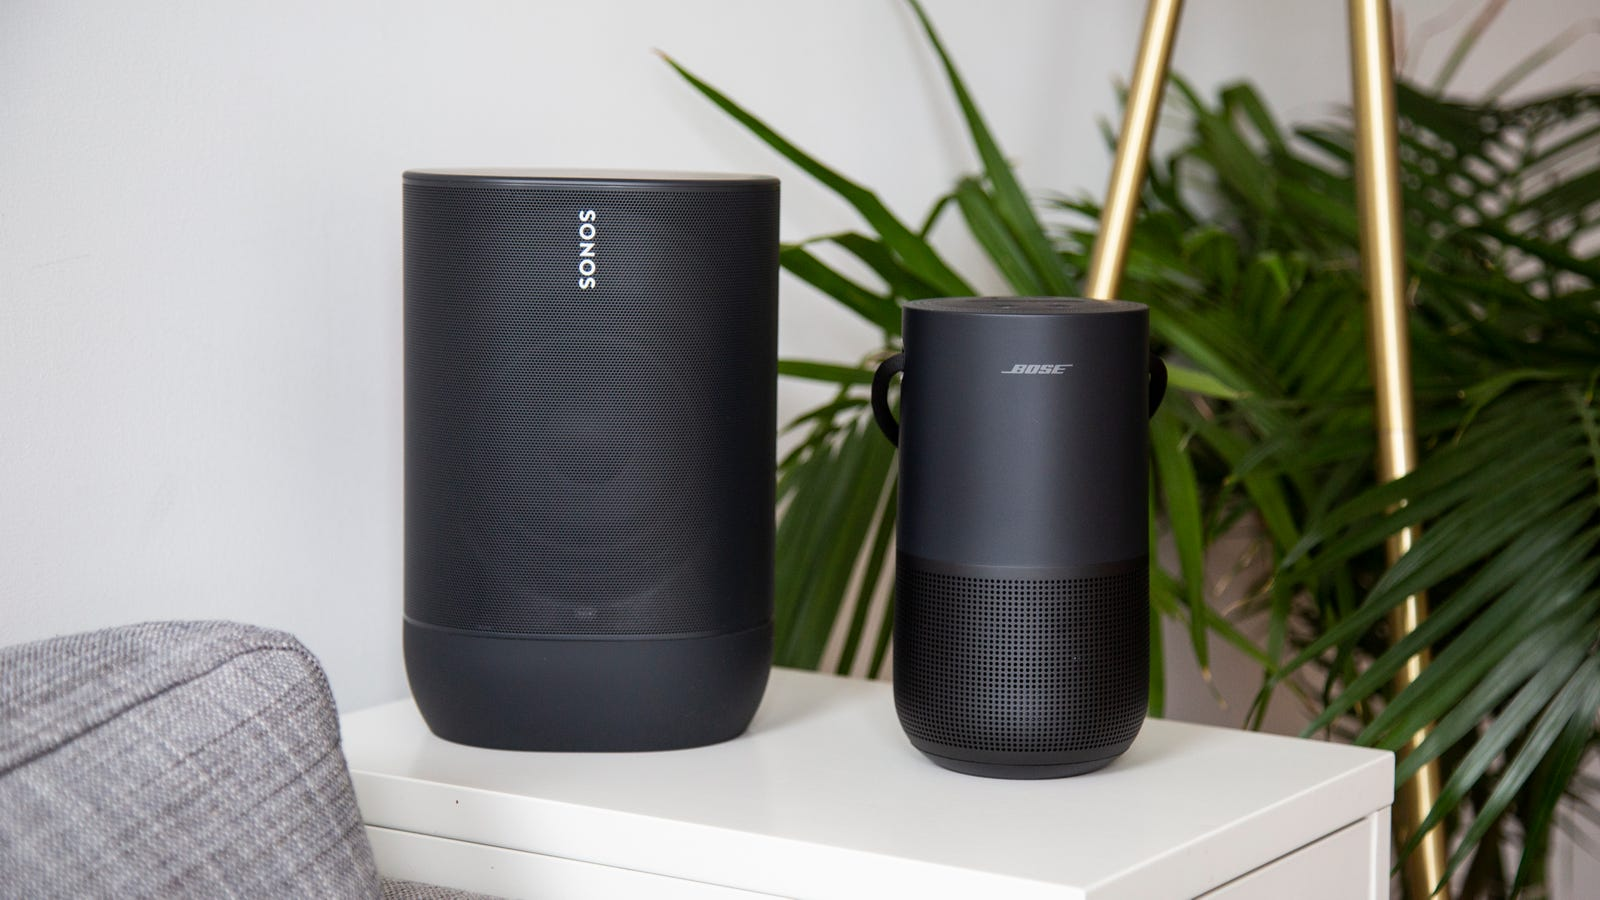 The Sonos Move (left) and the Bose Portable Home Speaker (right)